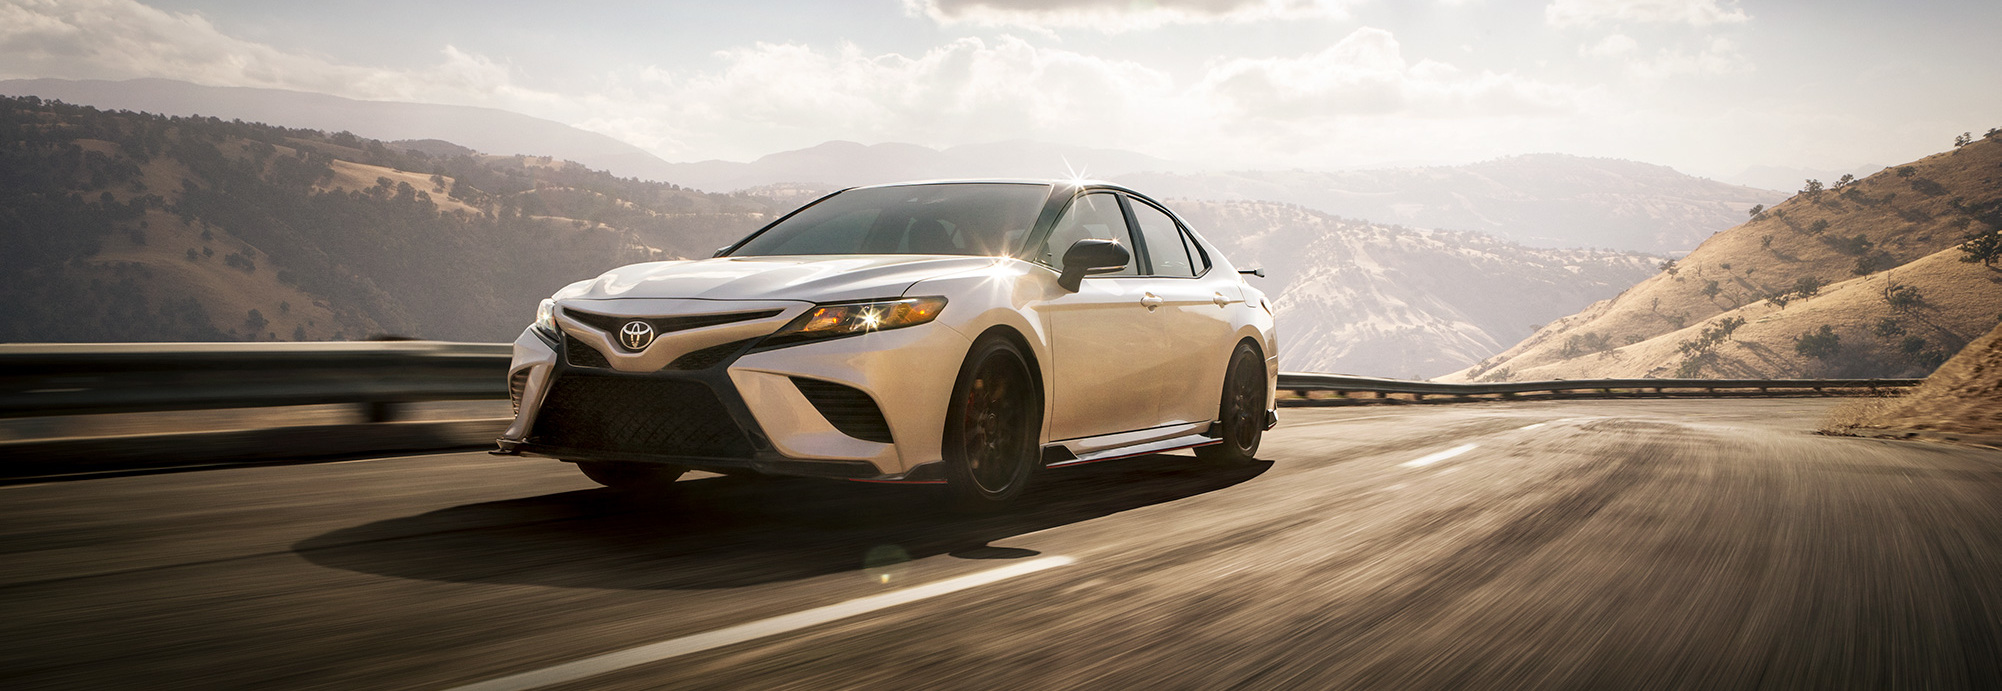 Model Features of the 2020 Toyota Camry at Tri County Toyota | White 2020 Camry TRD running on road